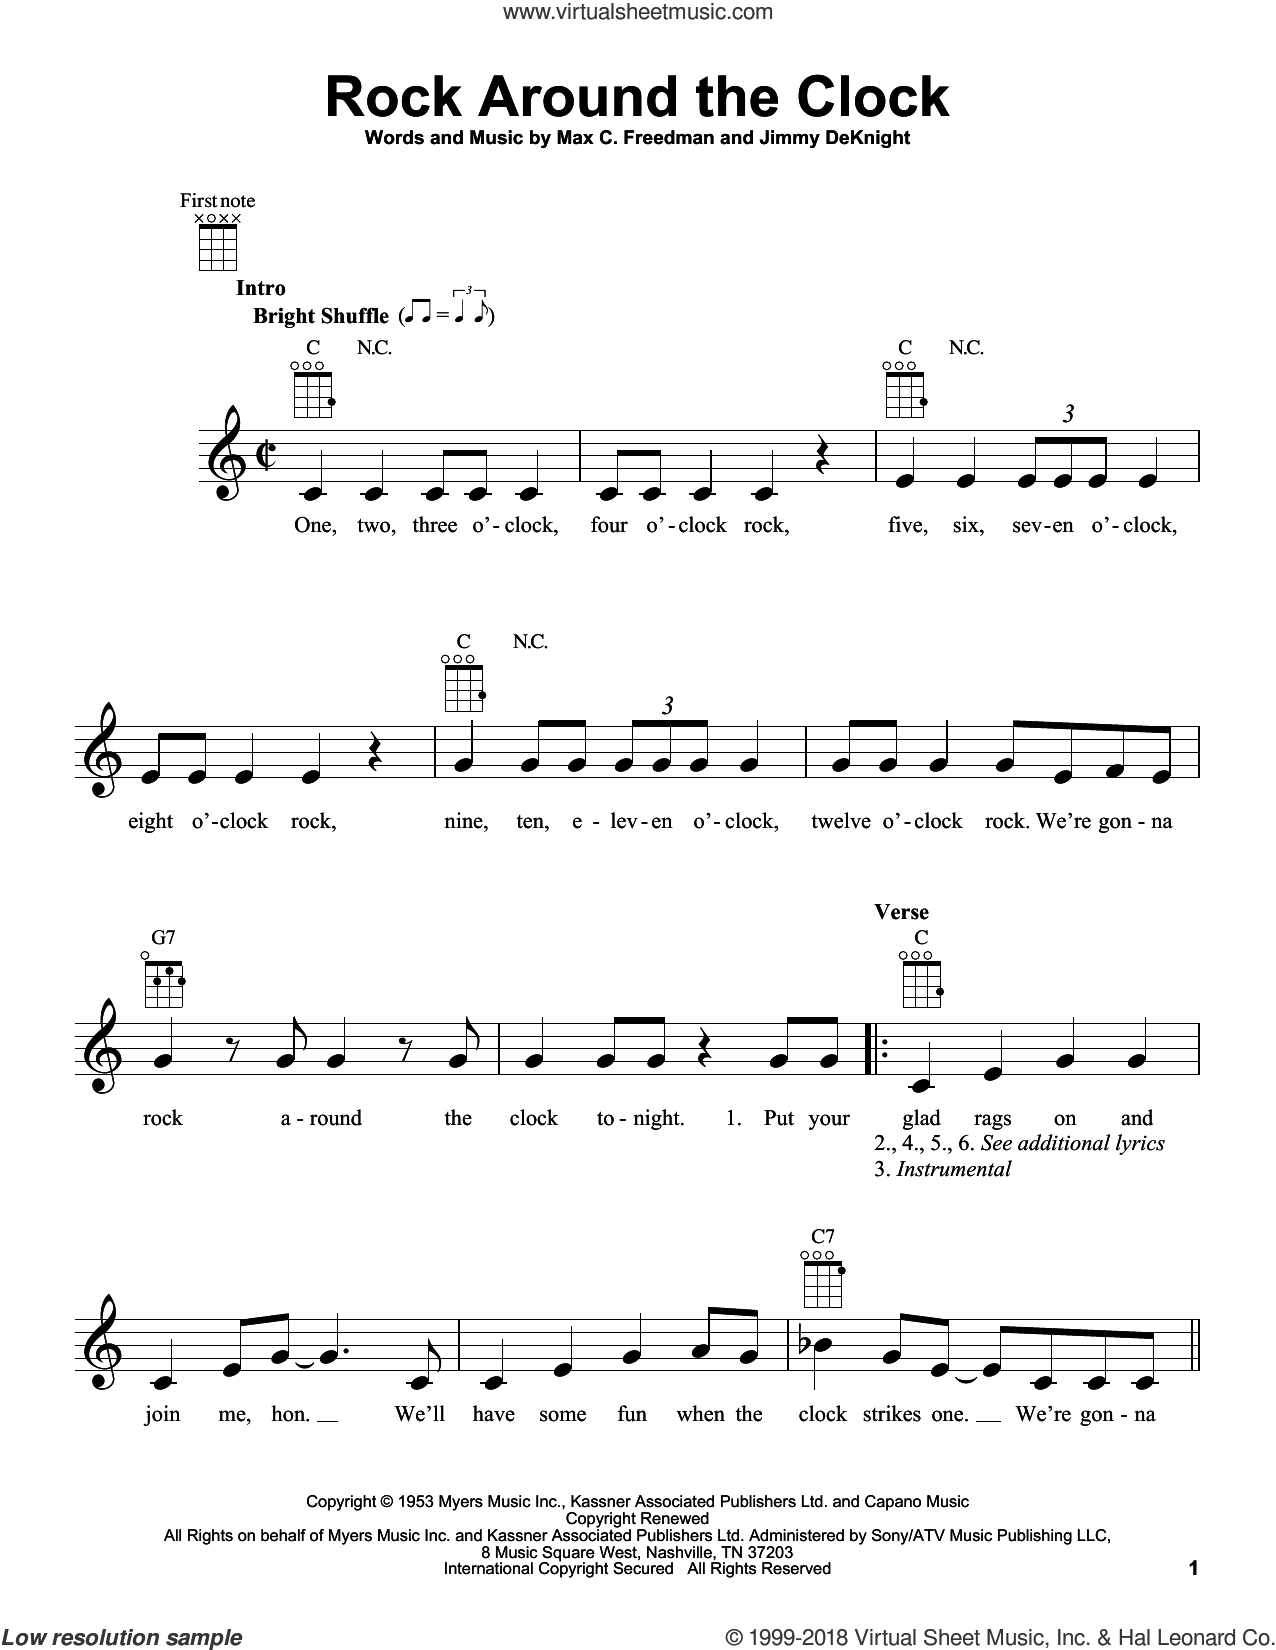 Rock Around The Clock sheet music for ukulele by Bill Haley & His Comets. Score Image Preview.